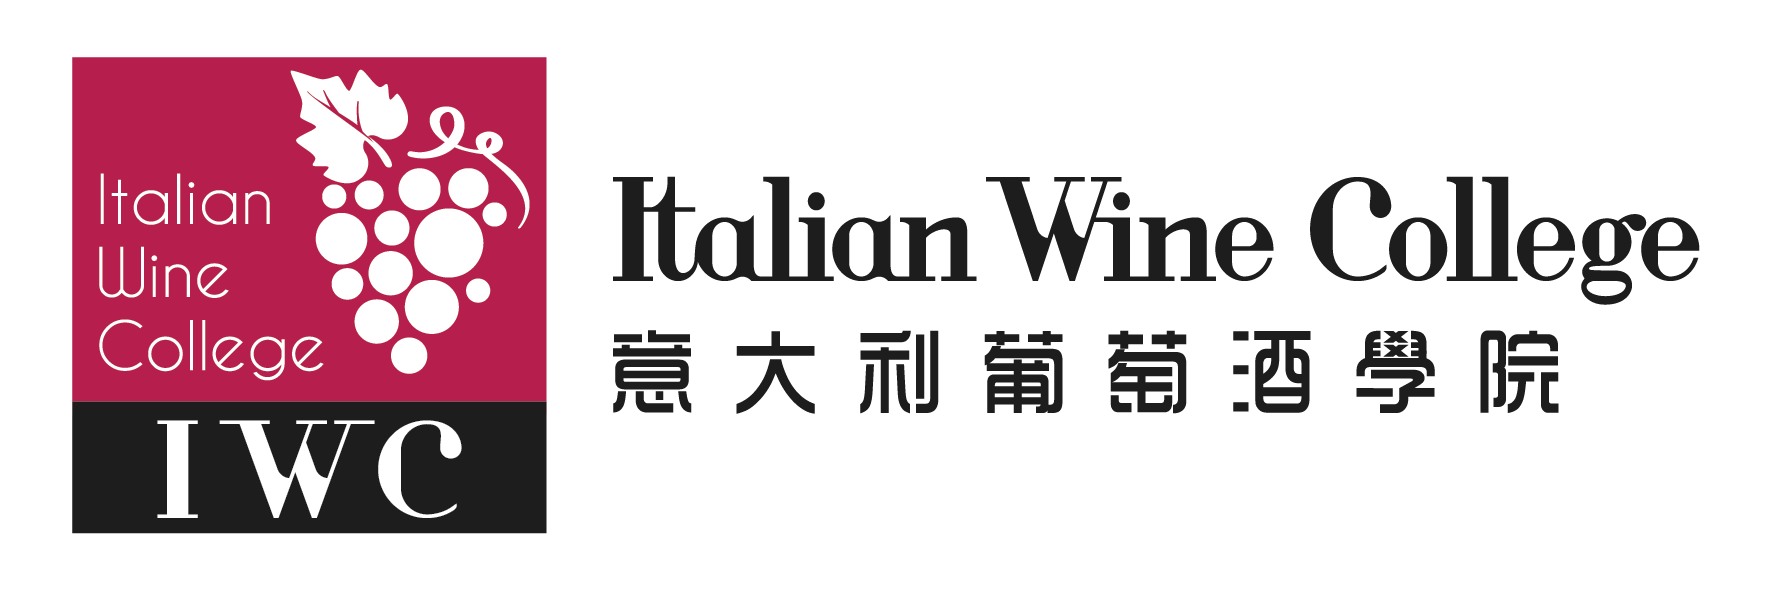 品酒工作坊 wine tasting workshop 品酒課程 wine tasting course 品酒術語 tasting terms